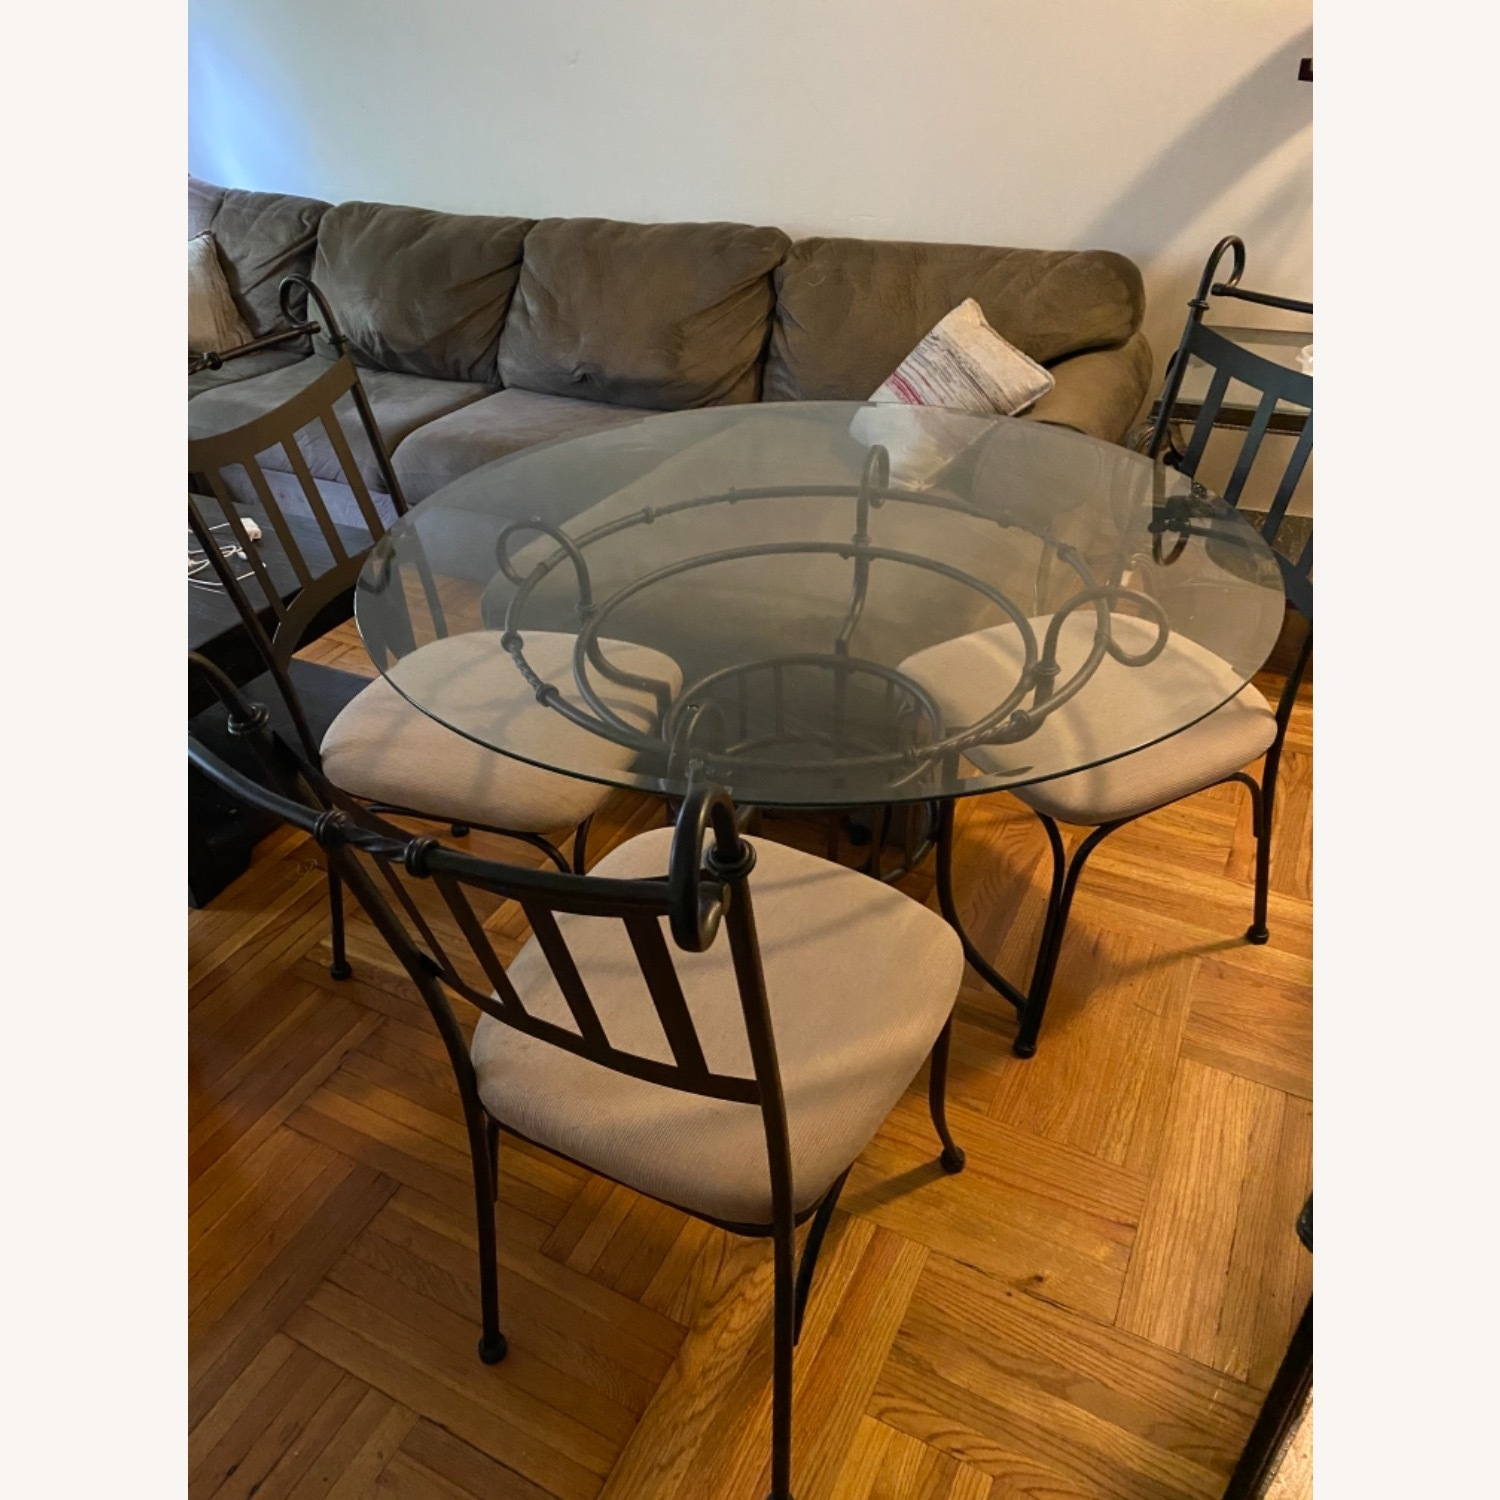 Glass Table and Three Chair Dining Set - image-2